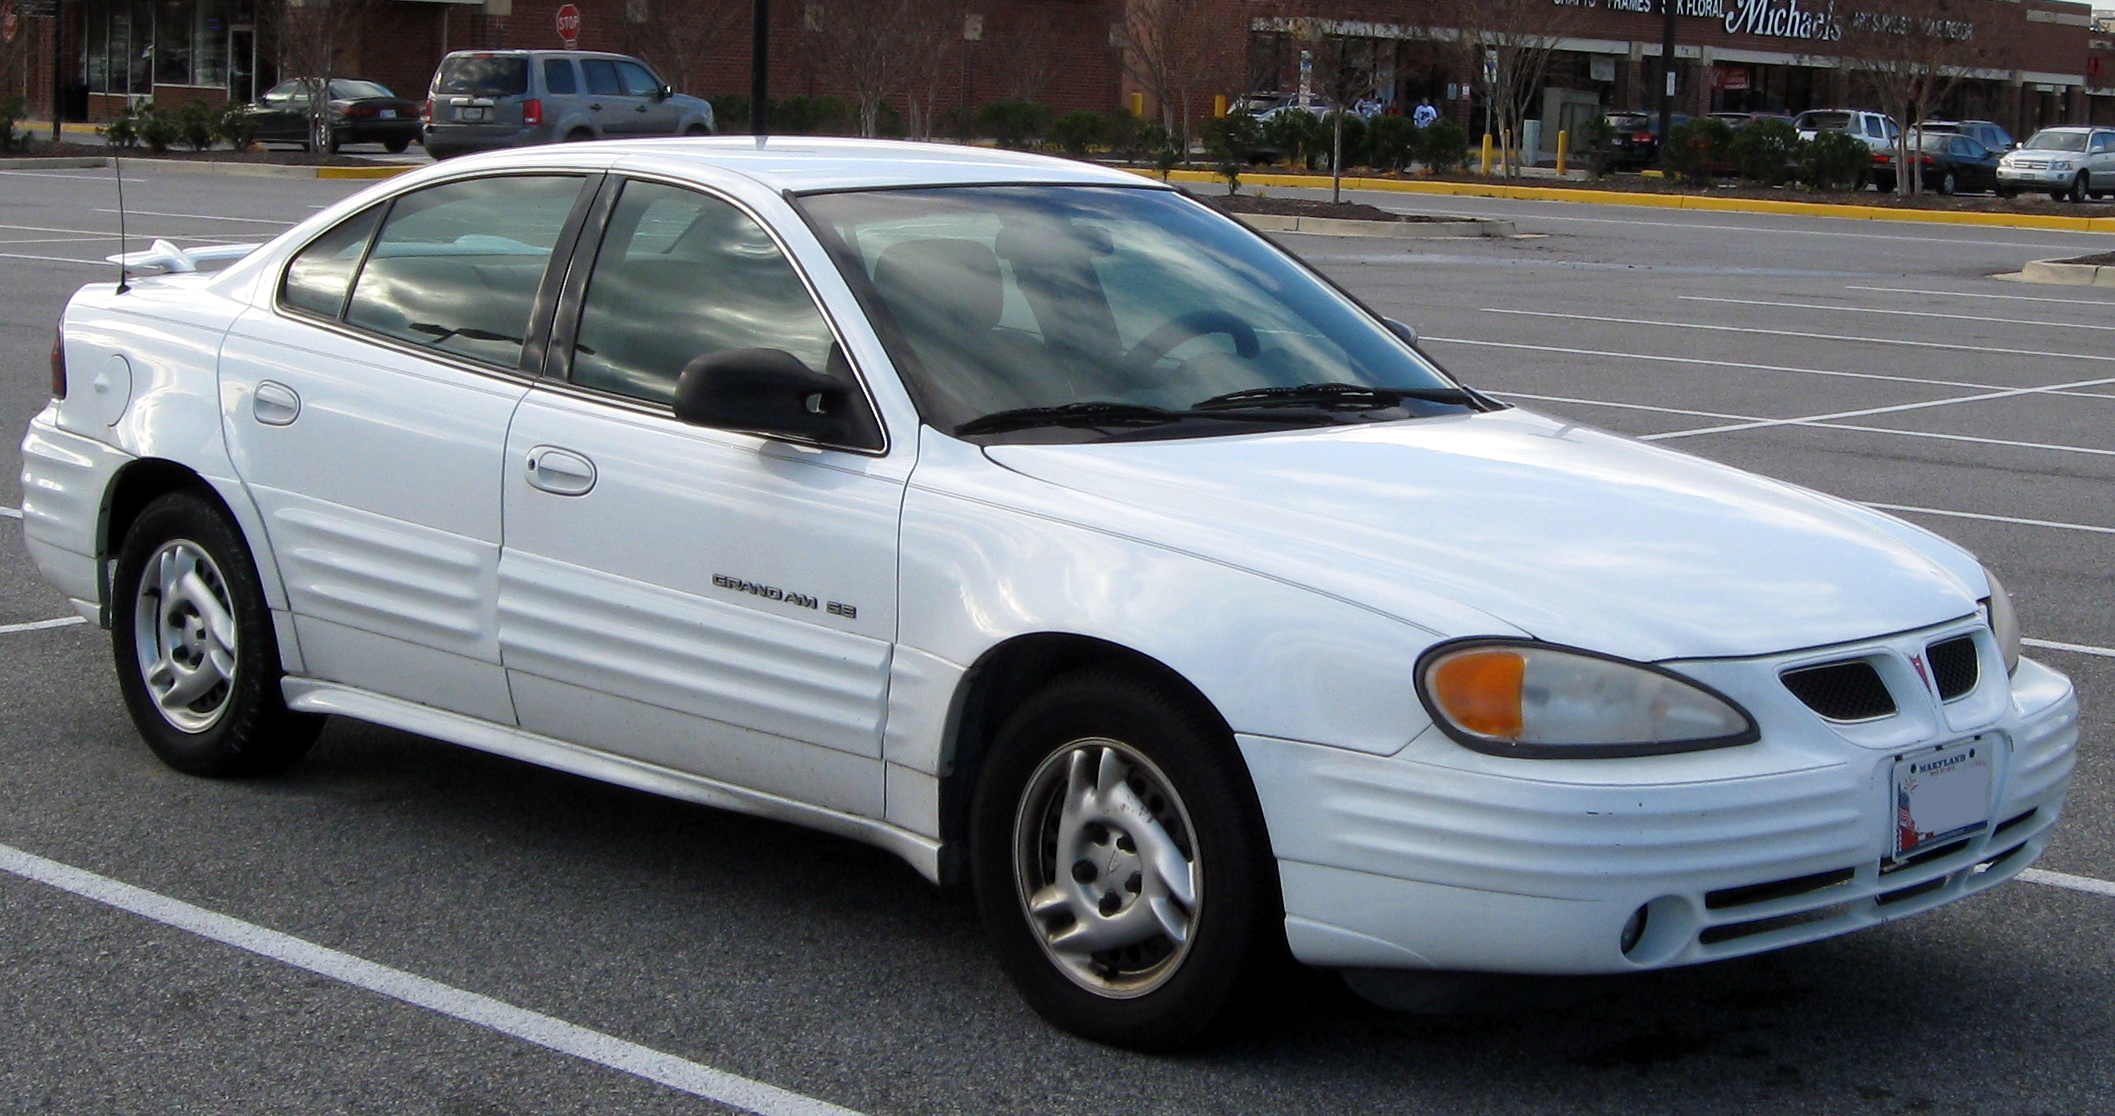 Pontiac Grand Am #16